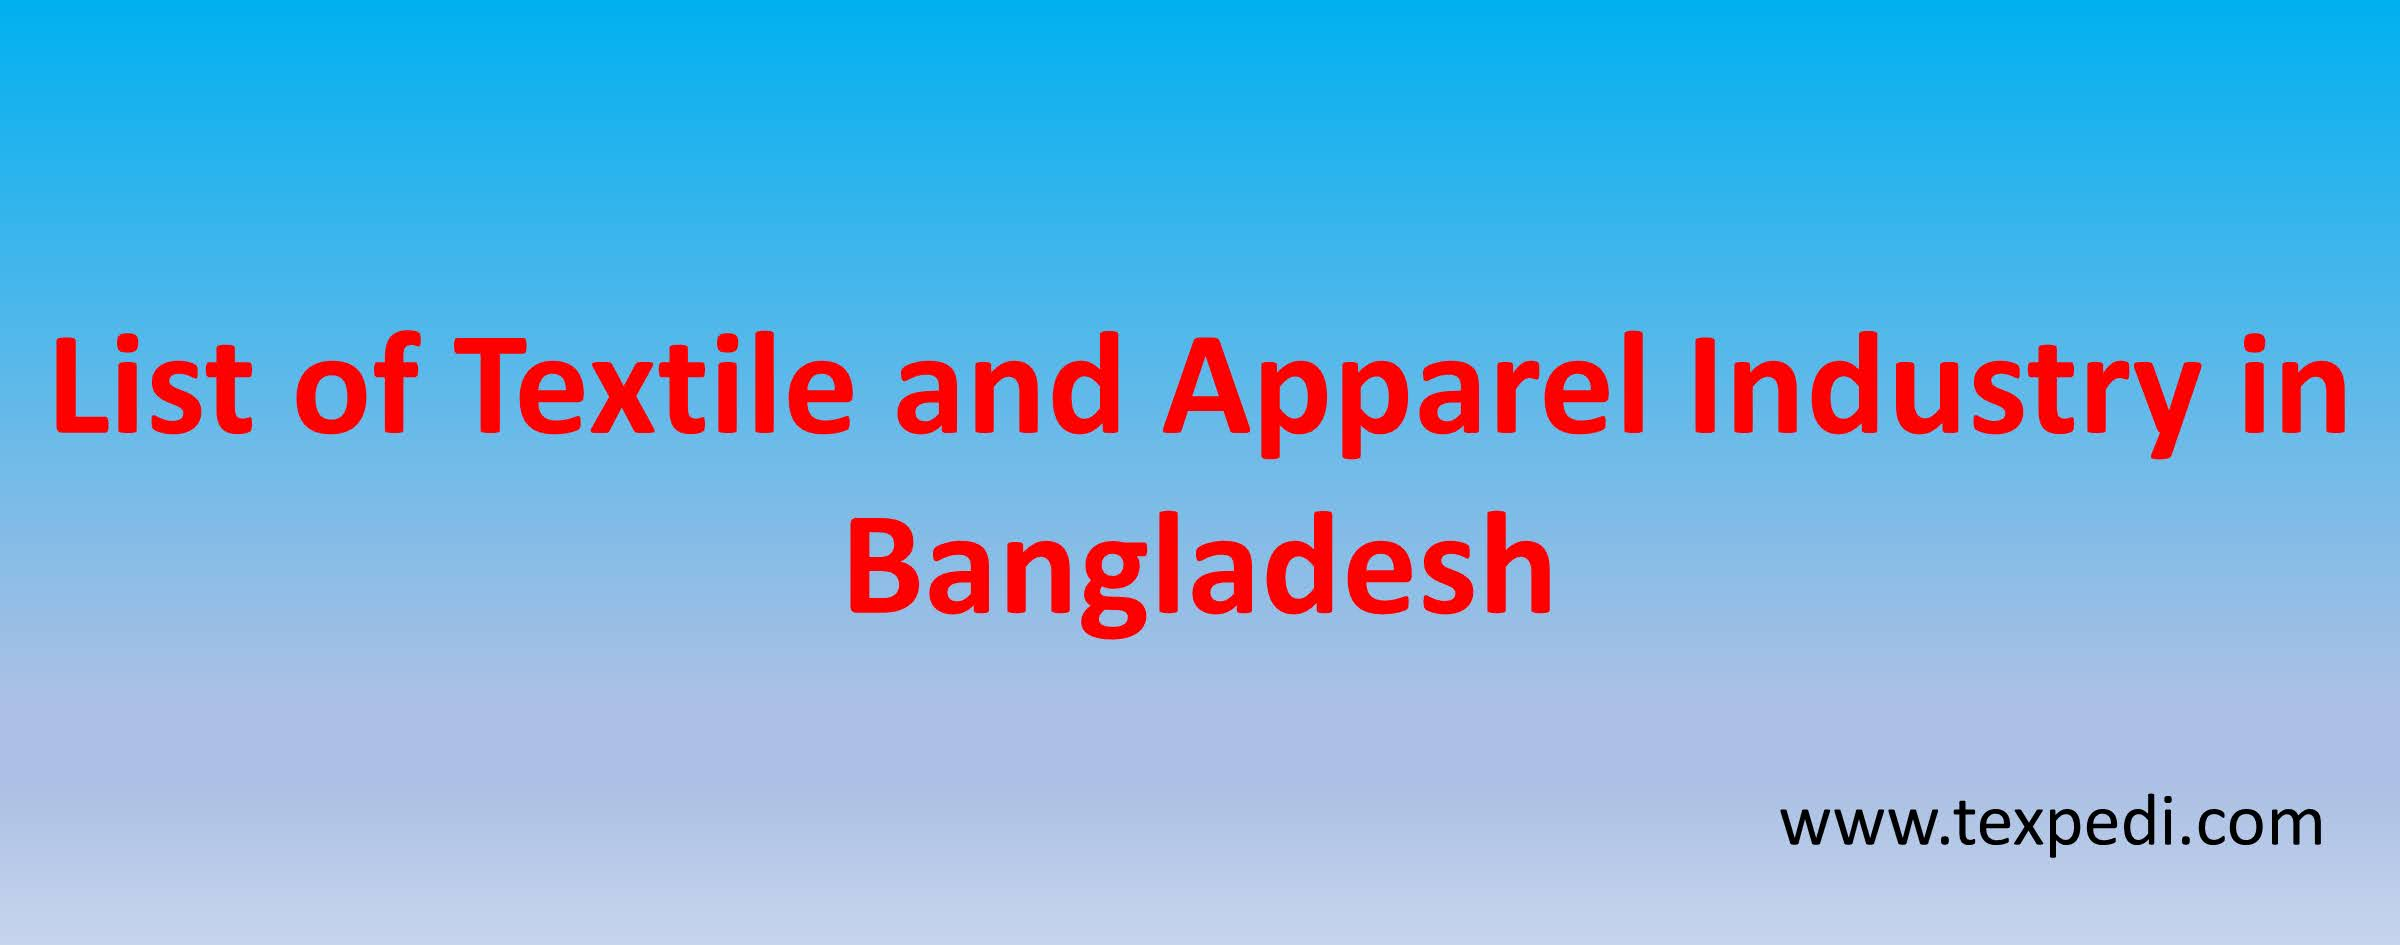 List of Textile and Apparel Industry in Bangladesh